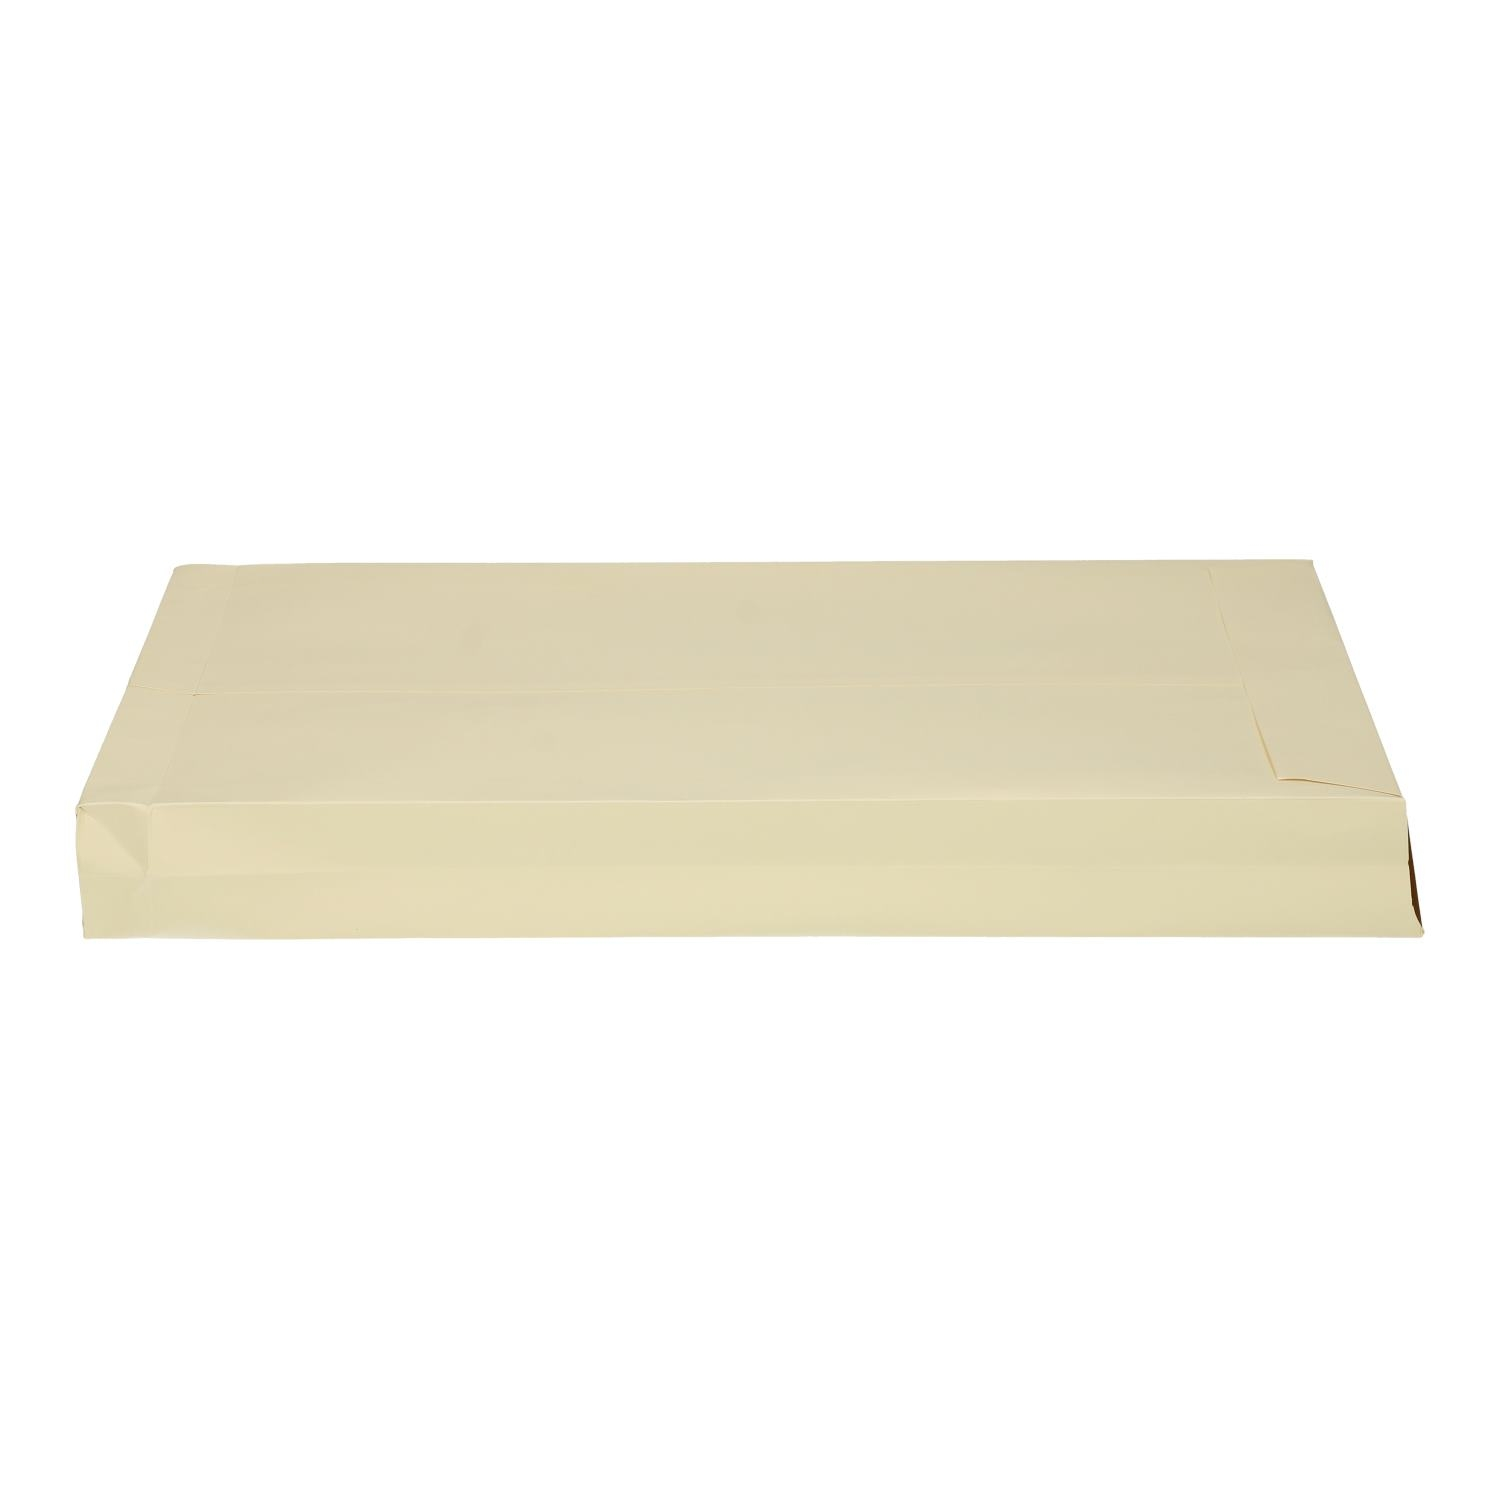 Monsterzak 230x350x38mm creme met plakstrip